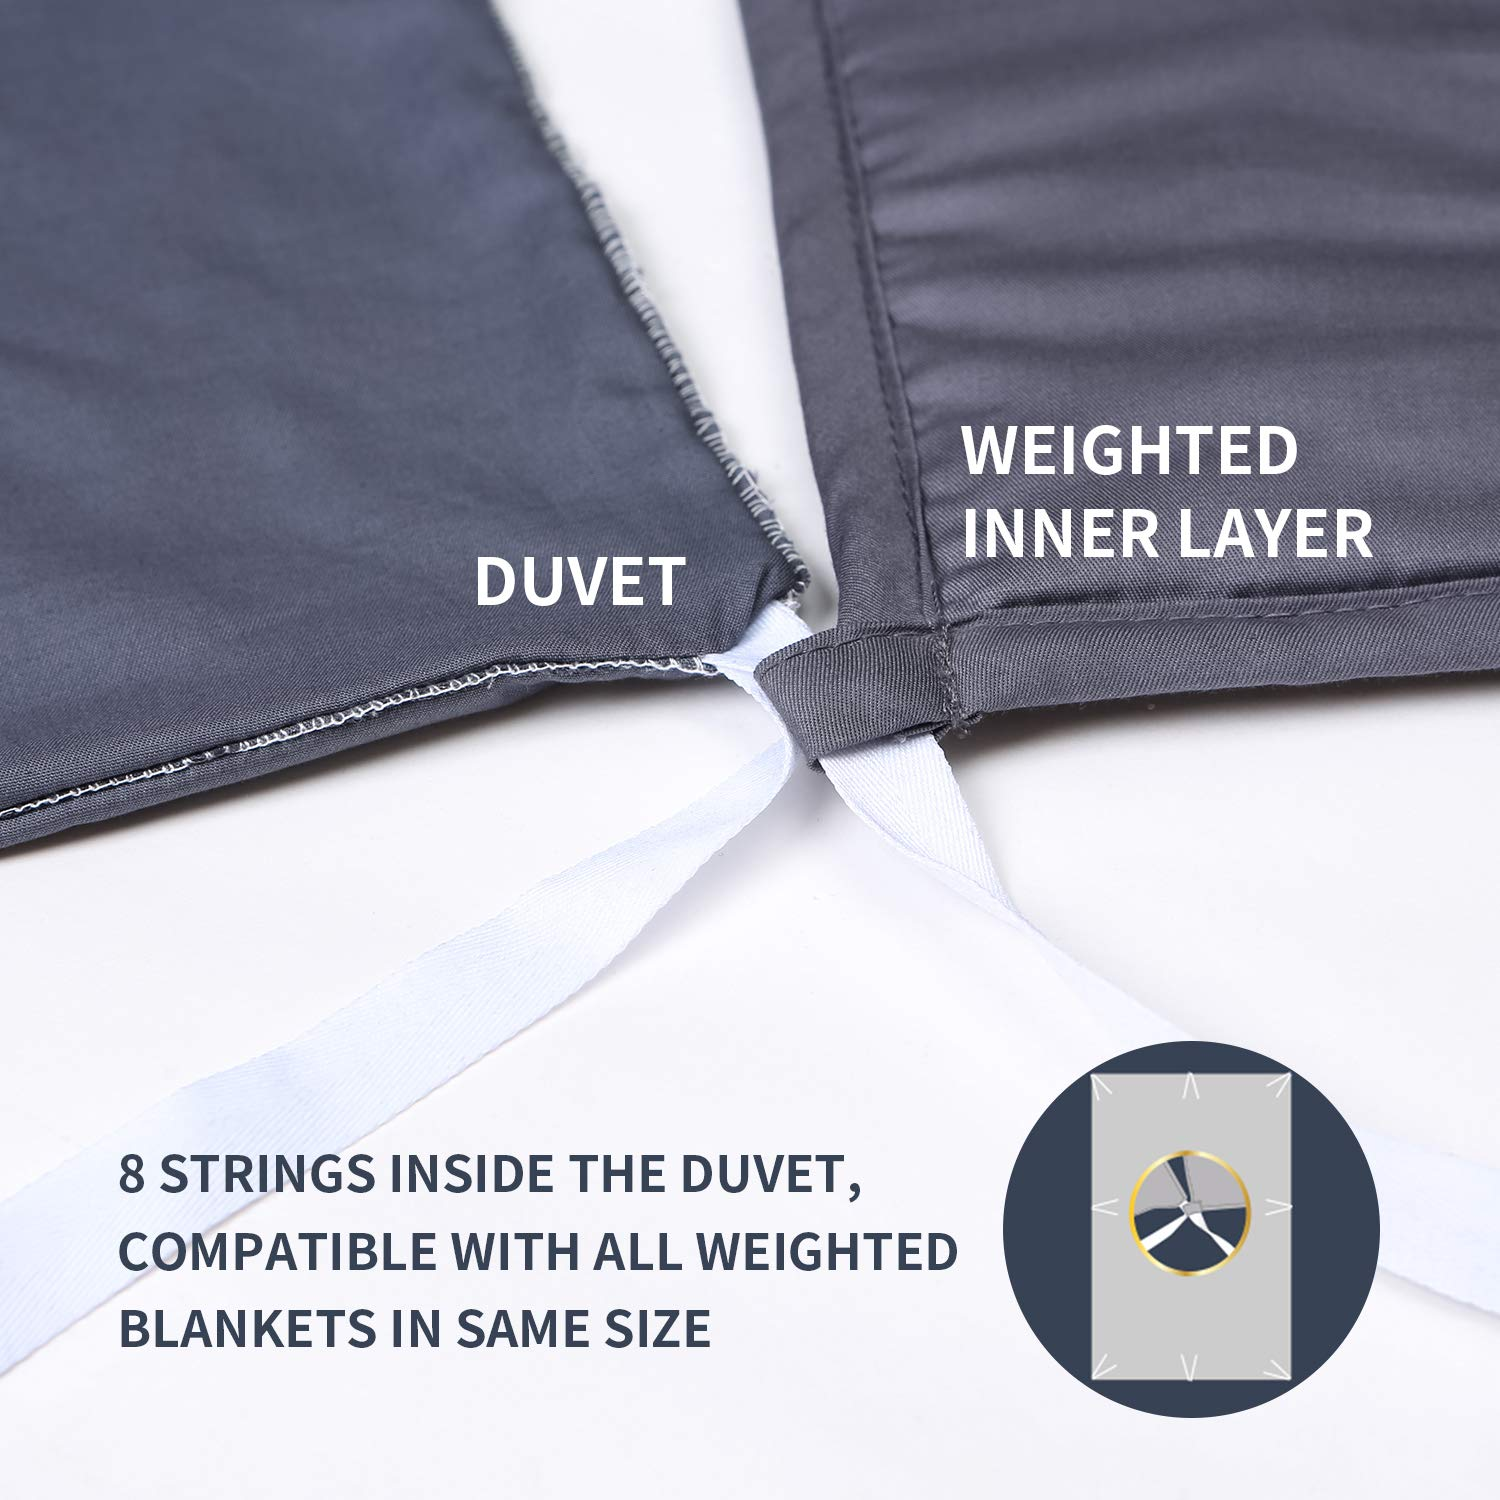 YnM Bamboo Duvet Cover for Weighted Blankets (60''x80'') - Blue Grey Print by YnM (Image #5)